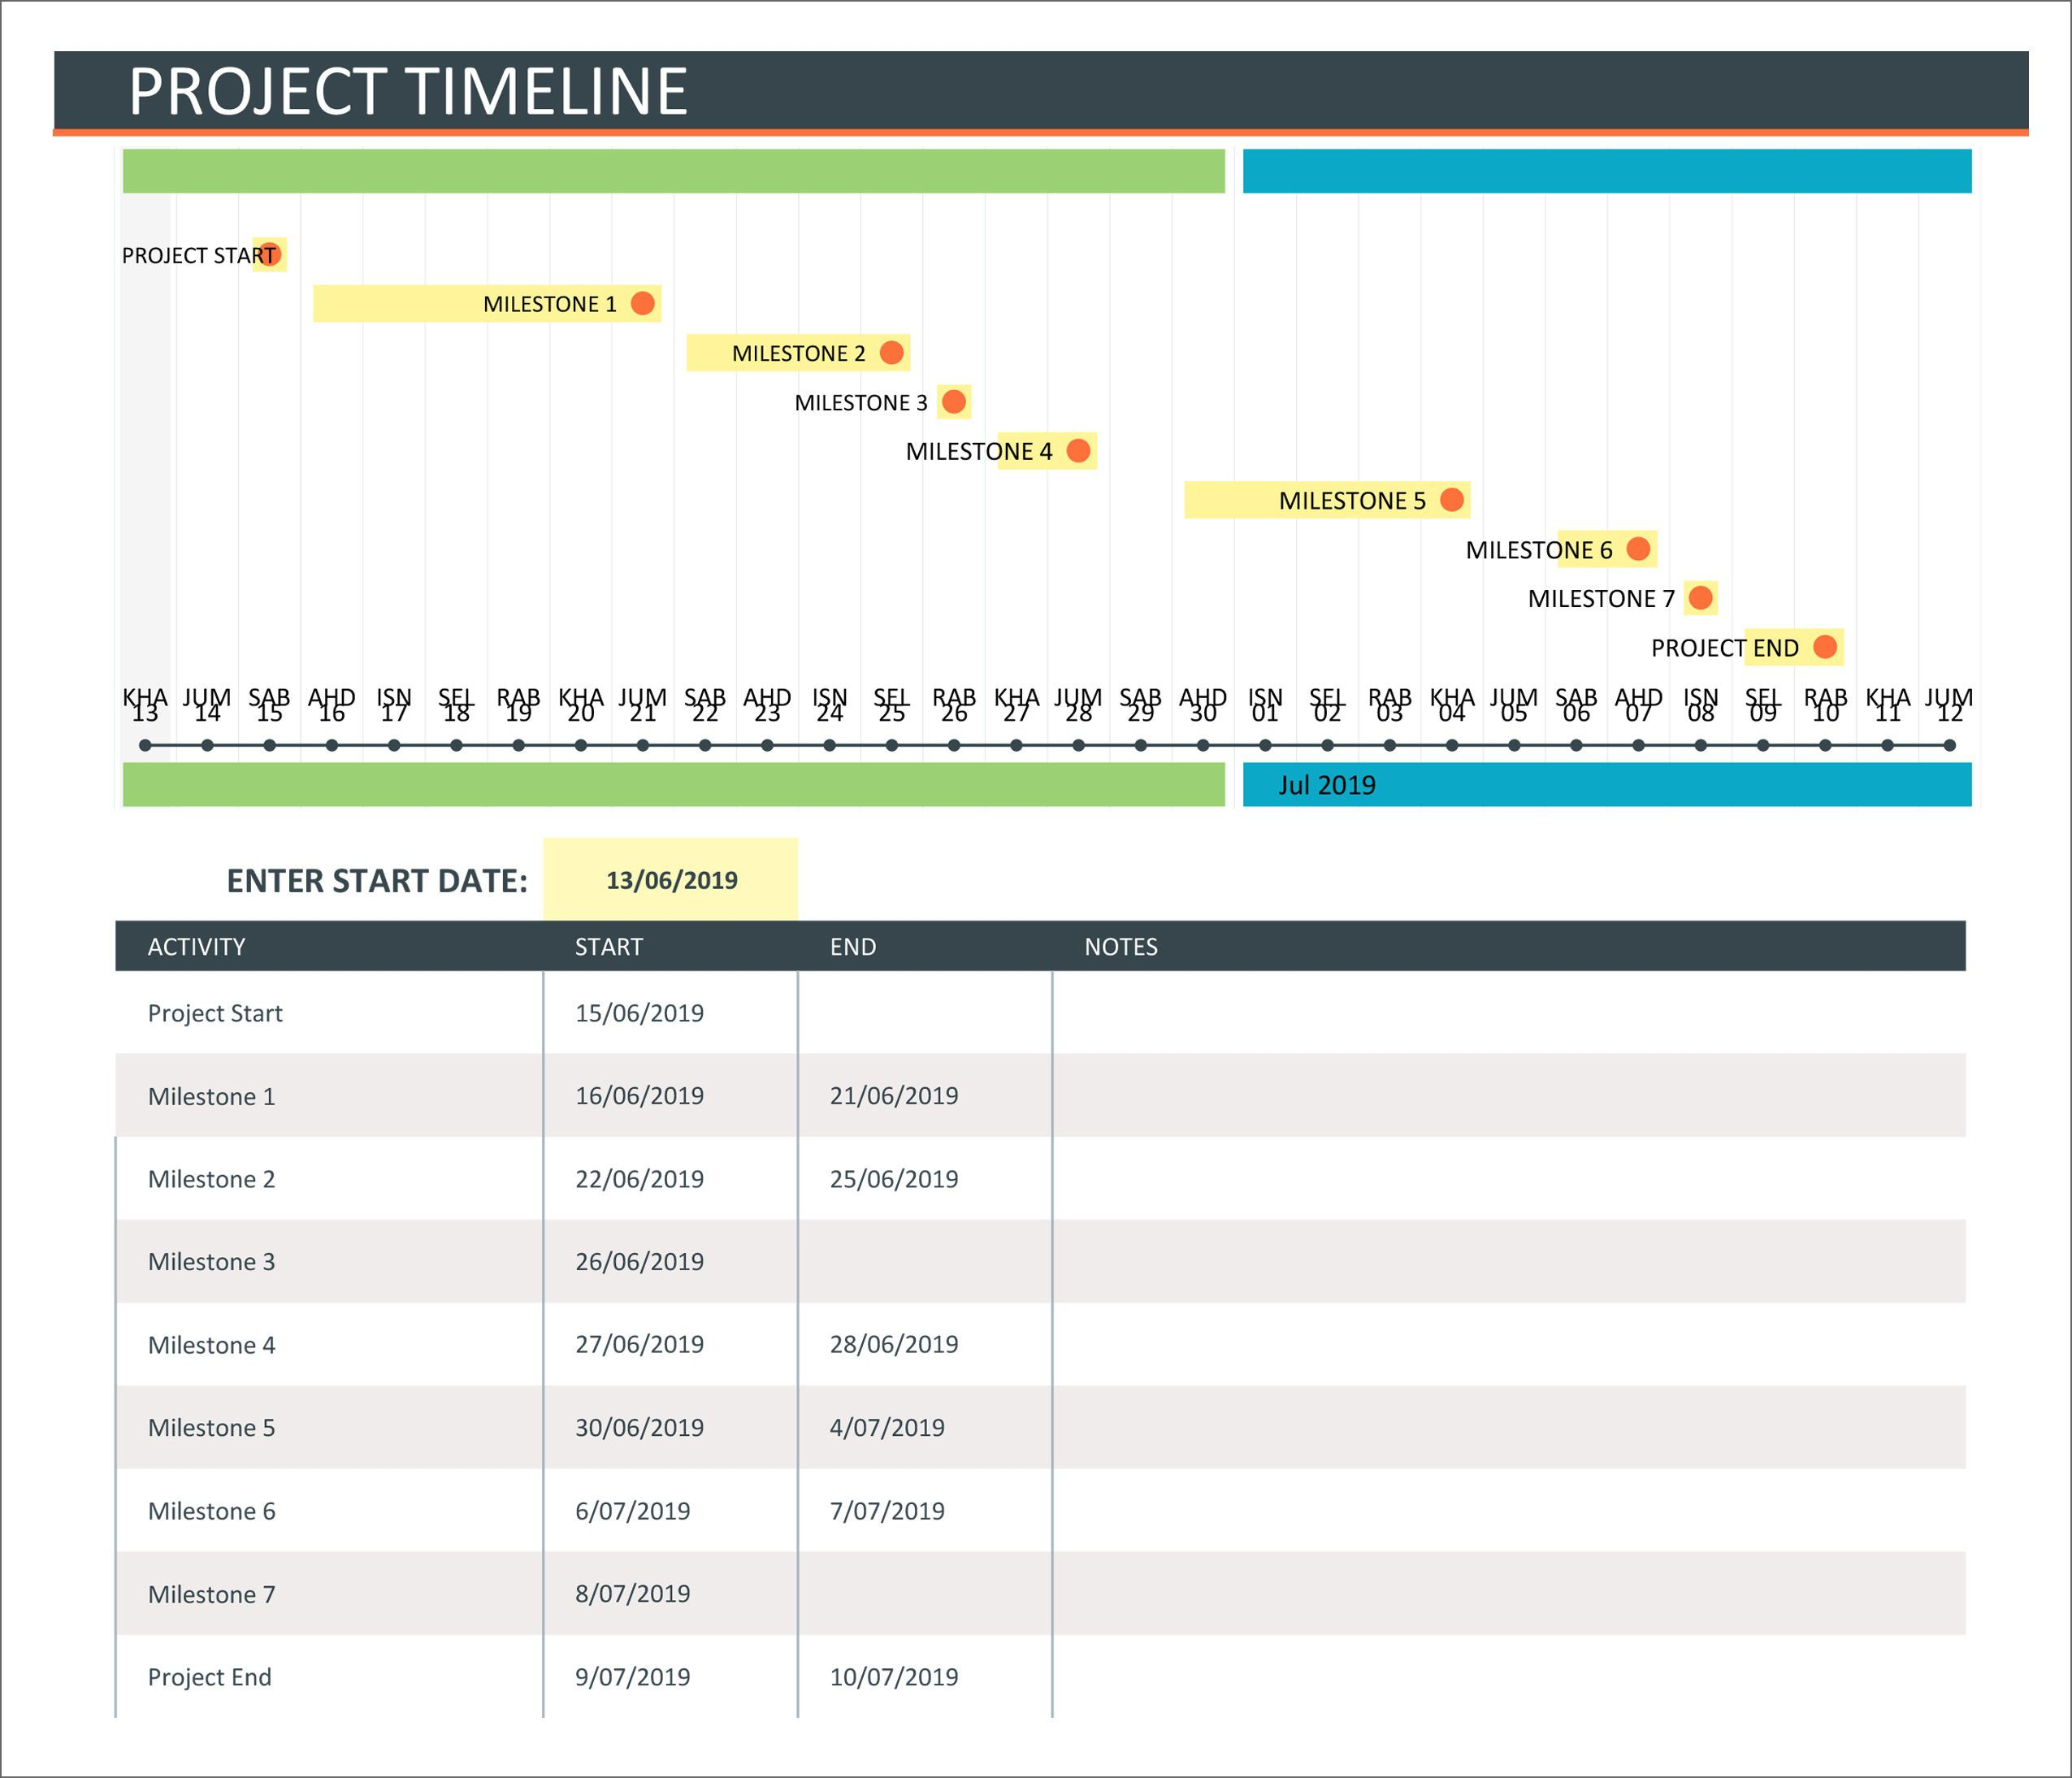 004 Staggering Project Management Timeline Template Excel High Resolution  FreeFull